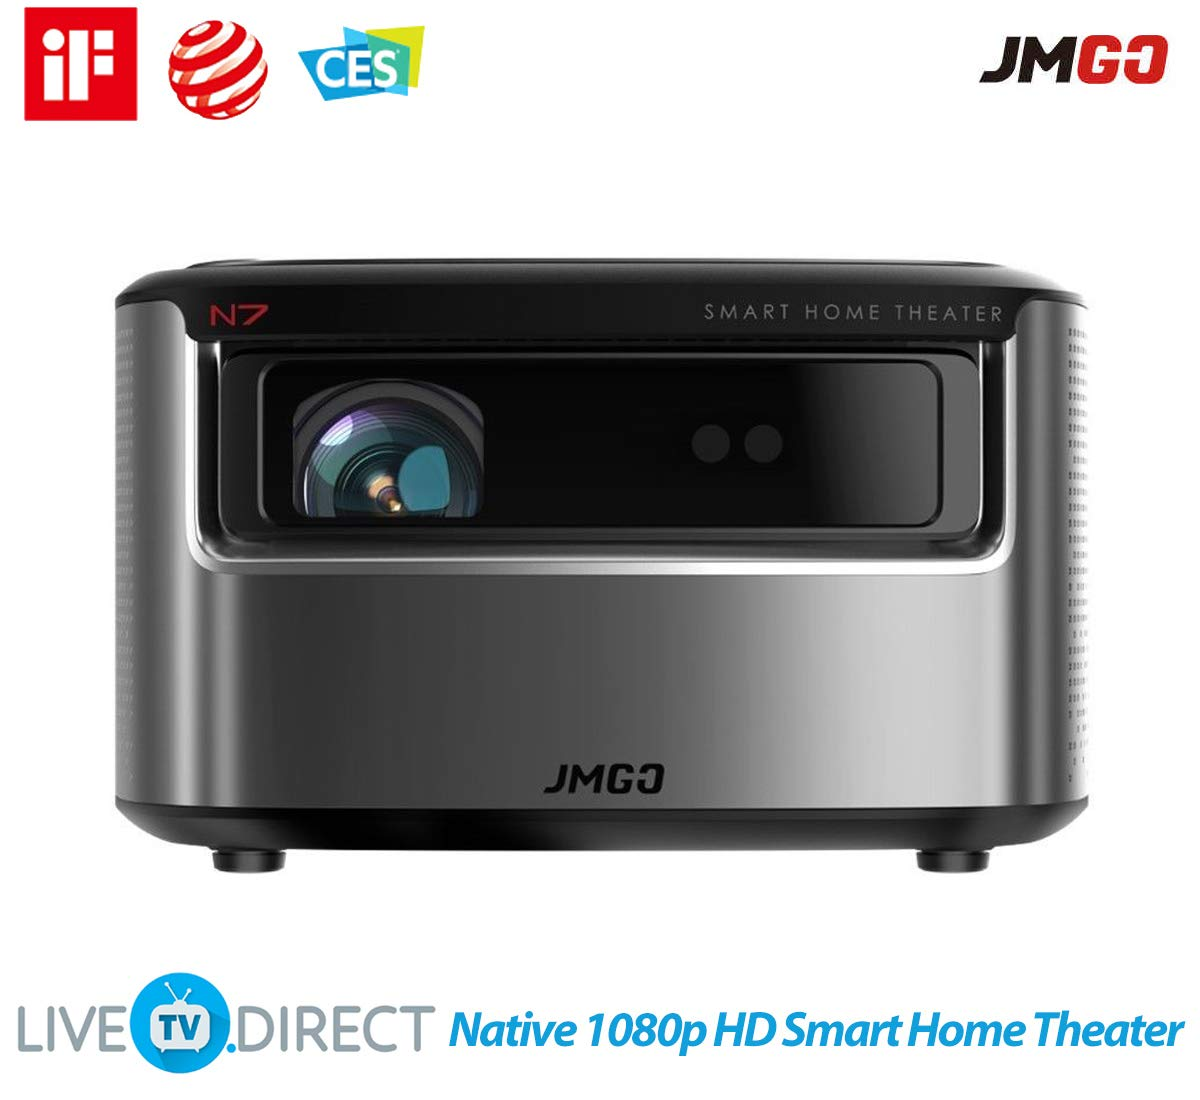 Amazon.com: Proyector, JmGO N7 Nativo 1080p HD Home Theater ...